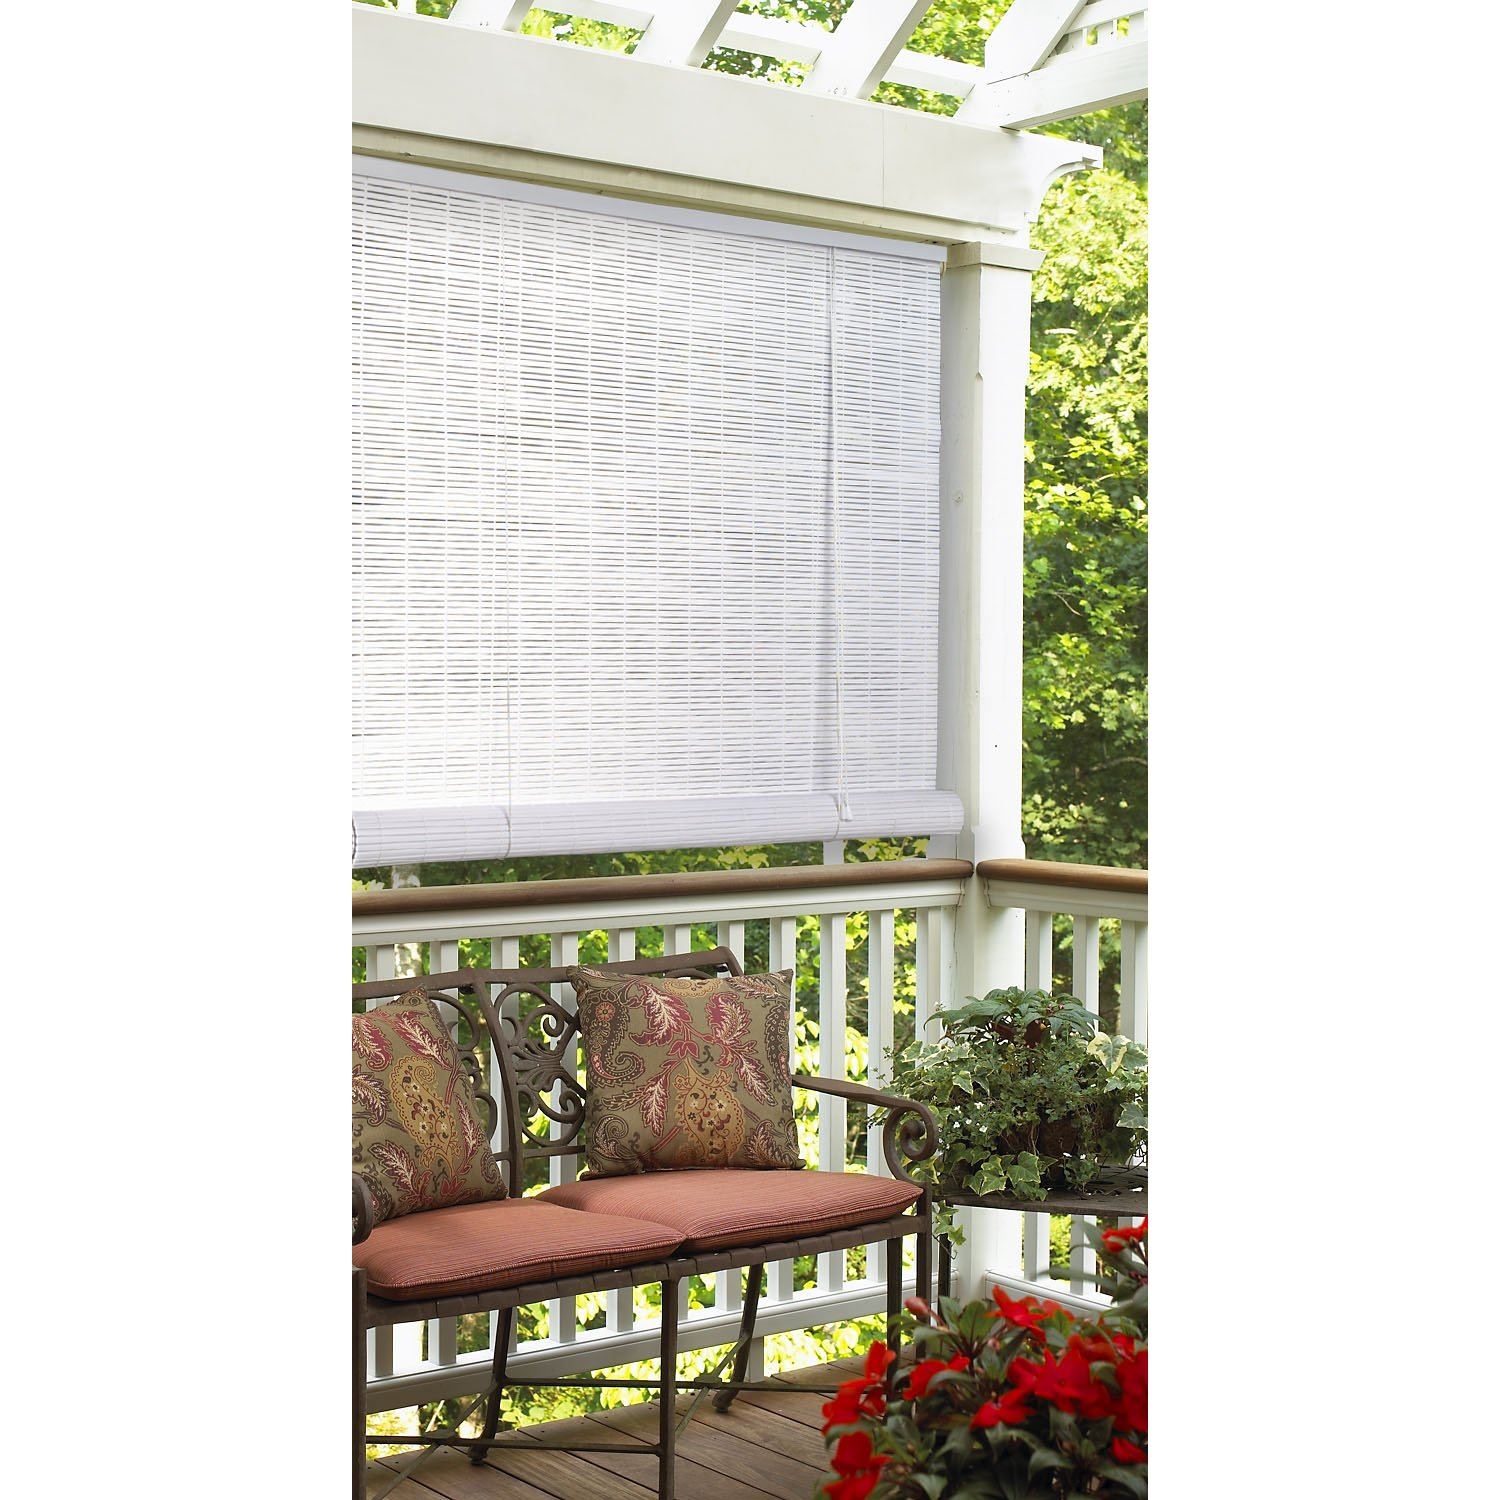 Menards Fence Panels | Menards Window Blinds | Window Shades Lowes